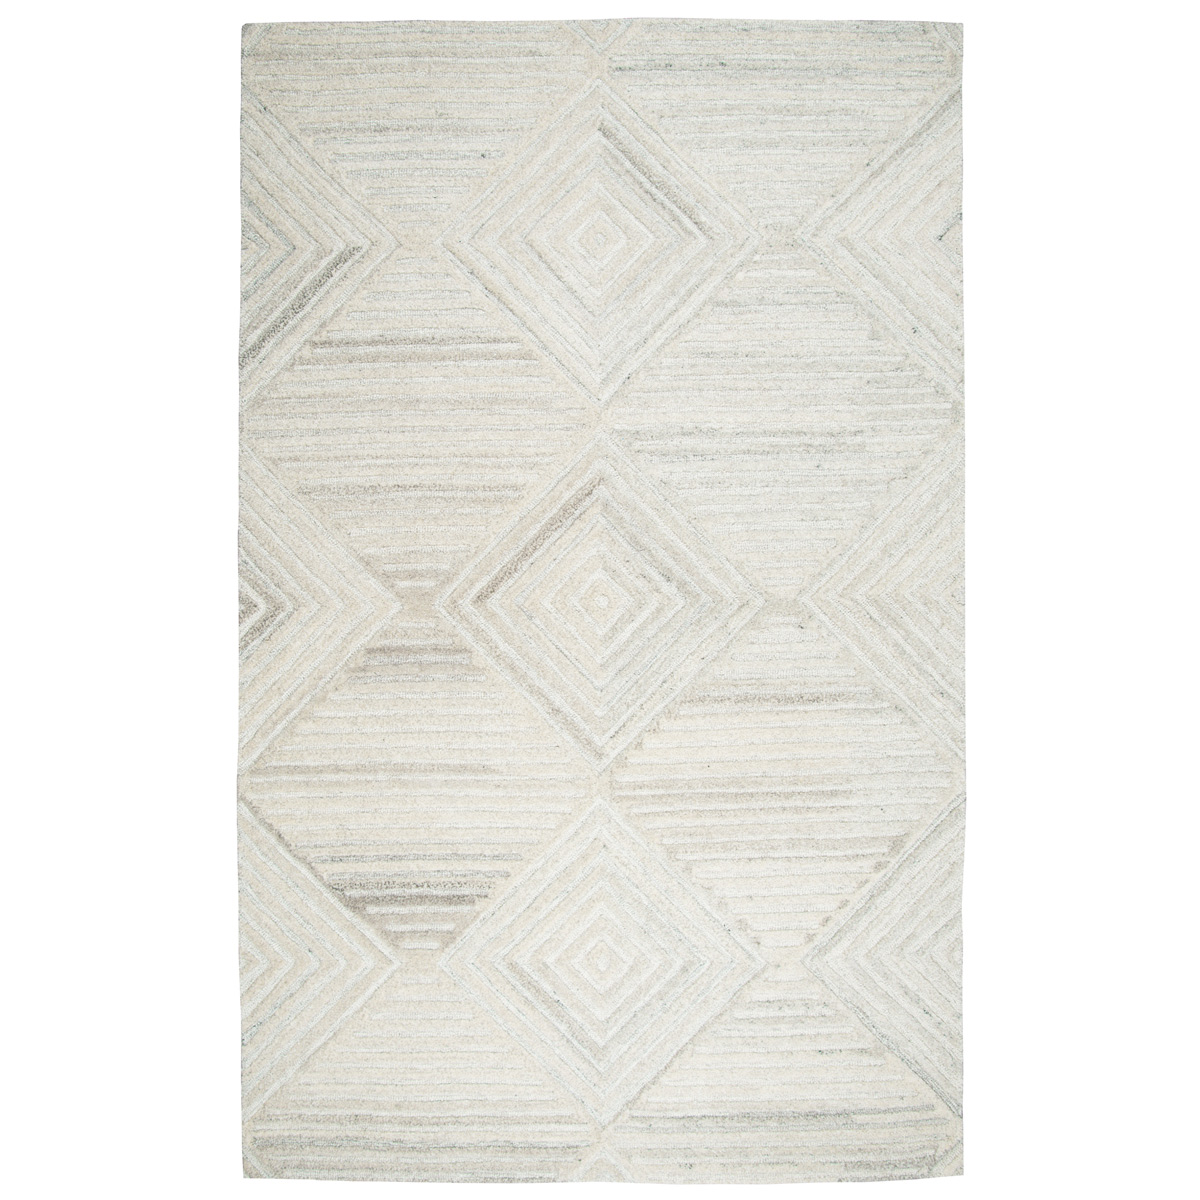 Ivory Freemont Canyon Rug - 8 x 10